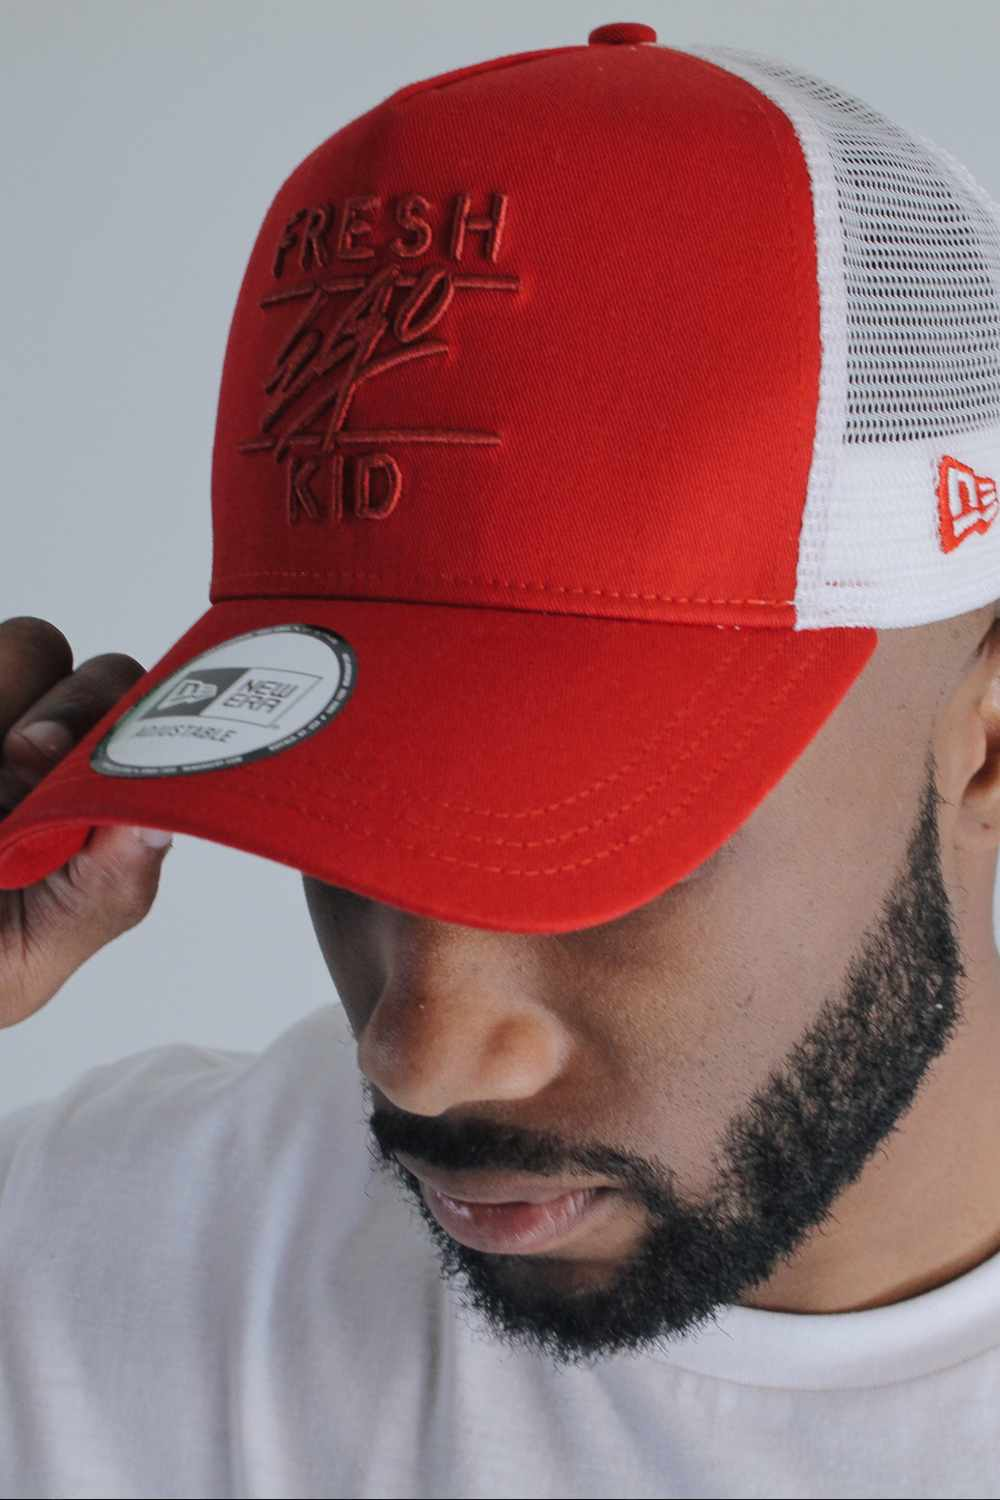 Fresh Ego Kid New Era Mesh Trucker Cap - Red/White - 1